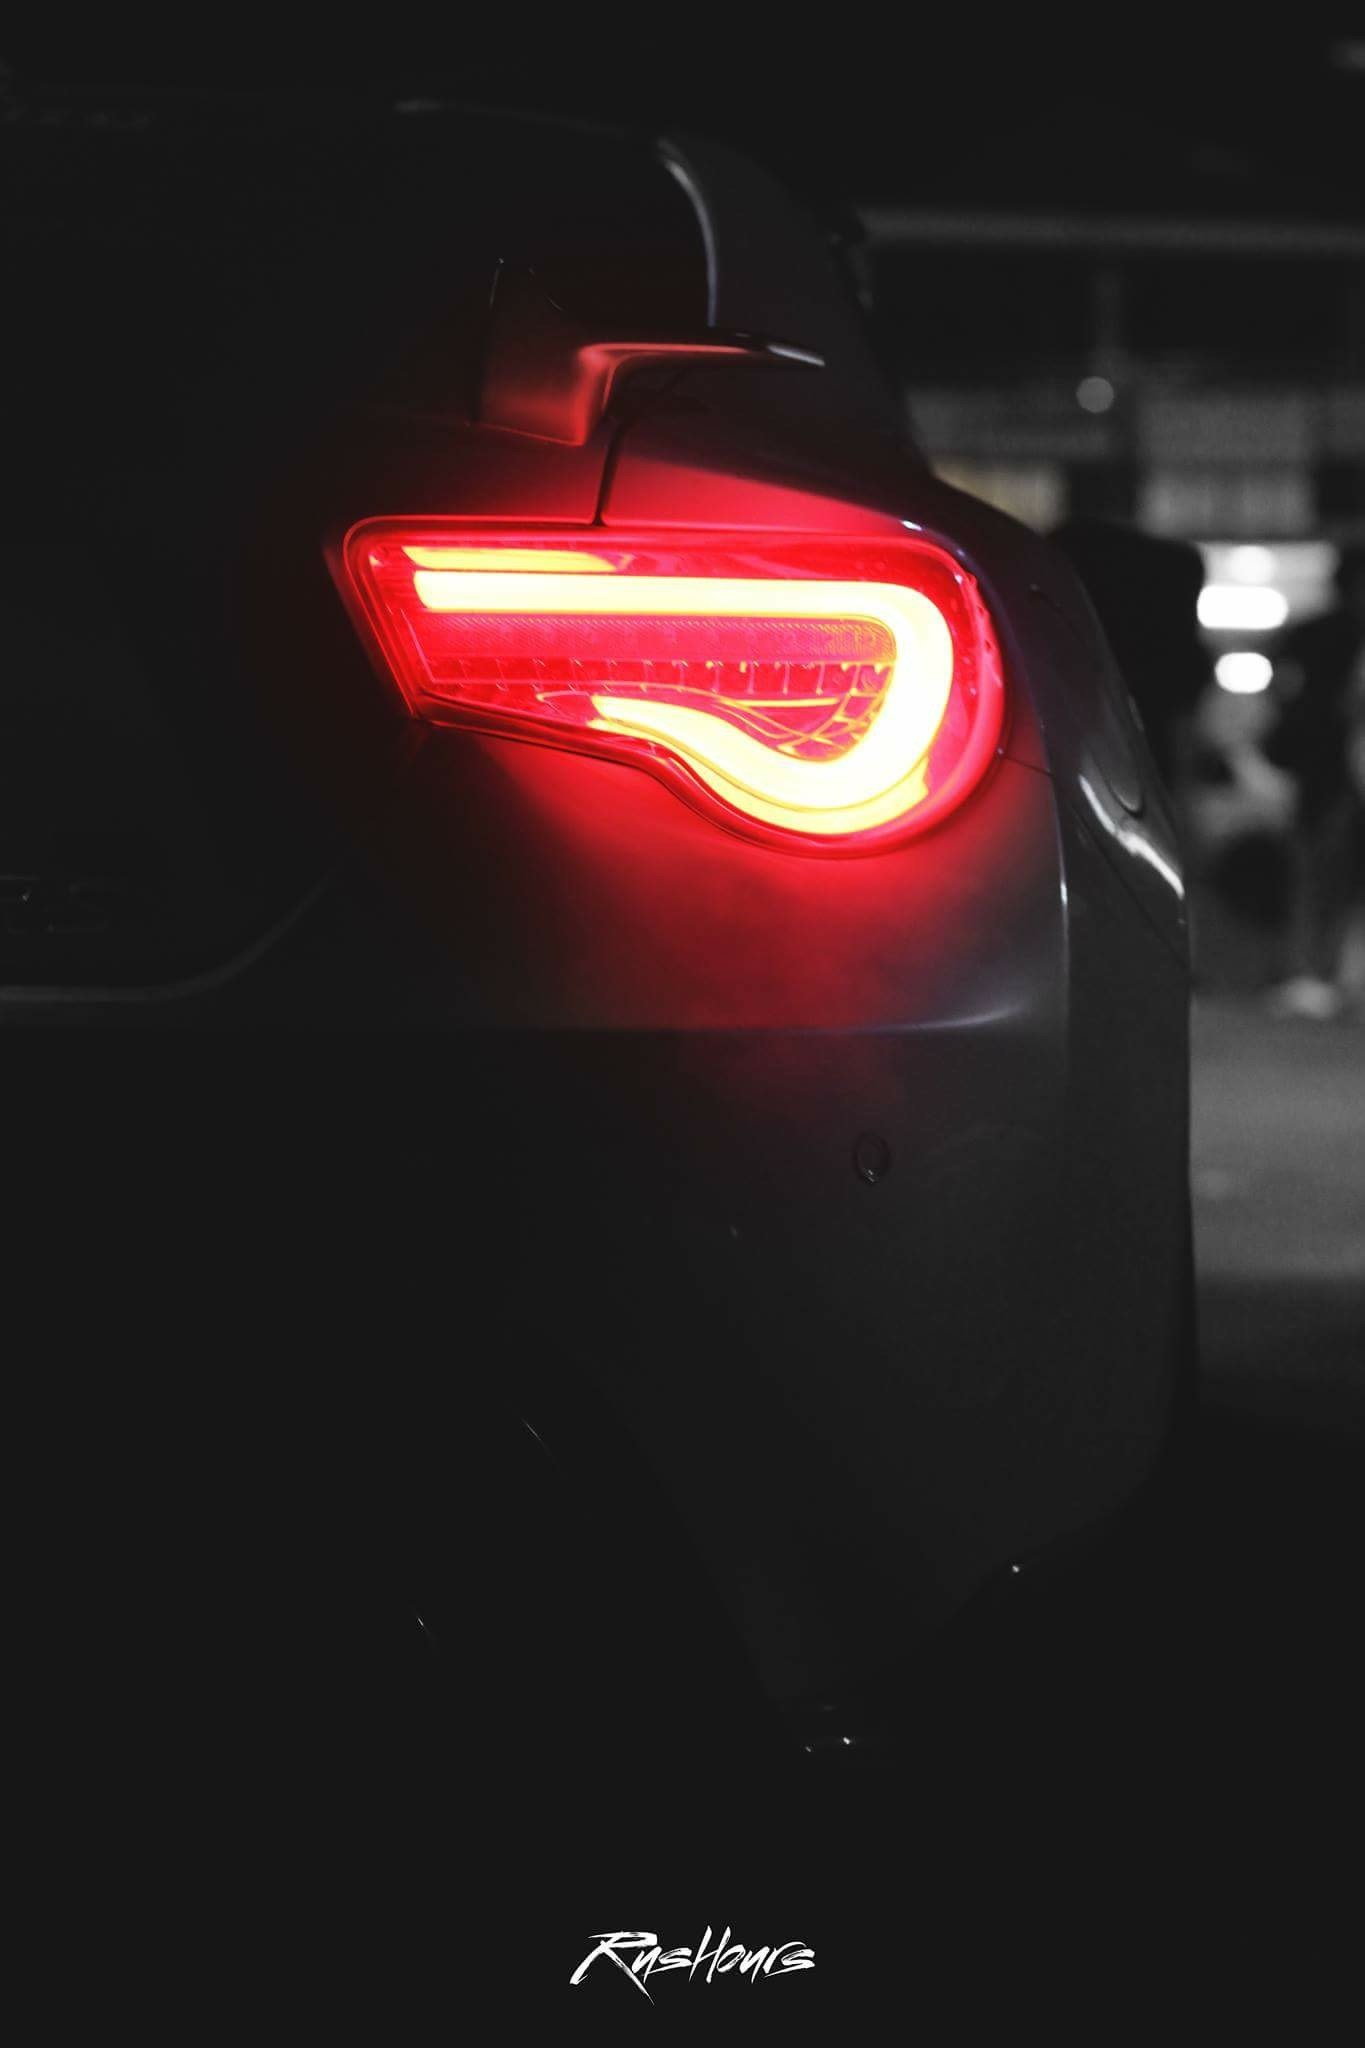 Res: 1365x2048, Brz iphone wallpaper #madmolre